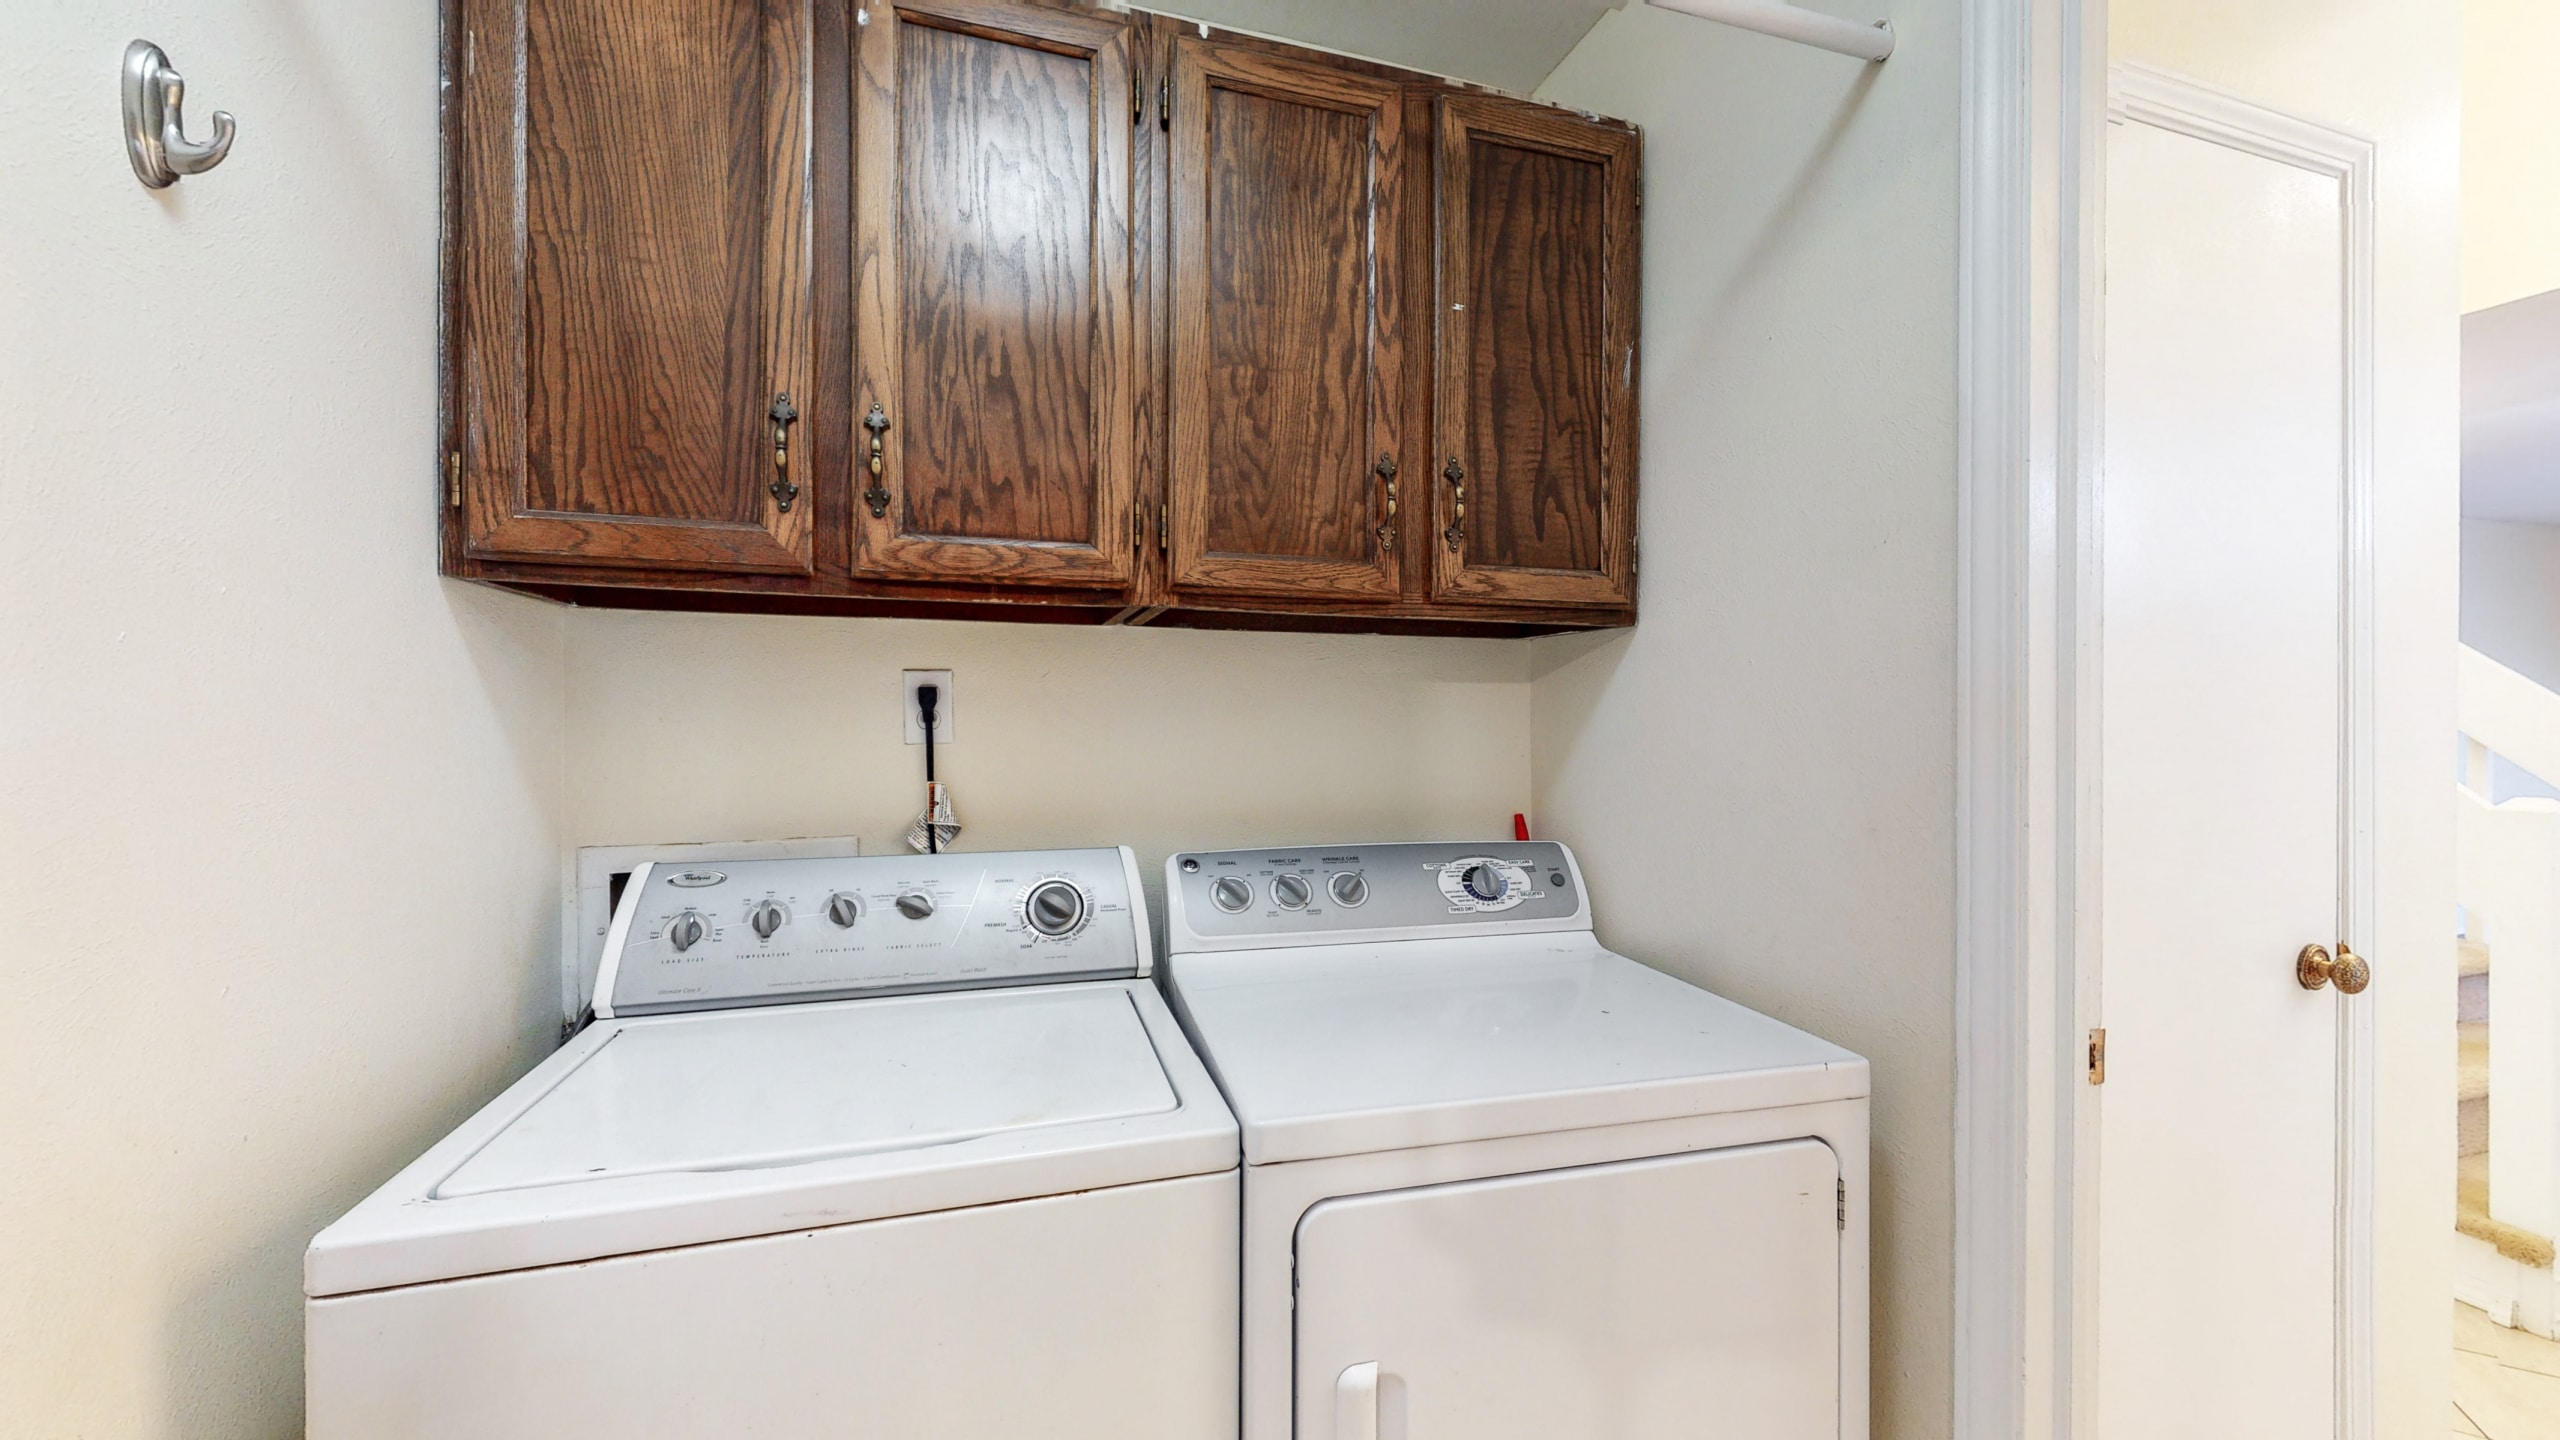 Bright Home For Sale, Washer, Dryer, Laundry Room